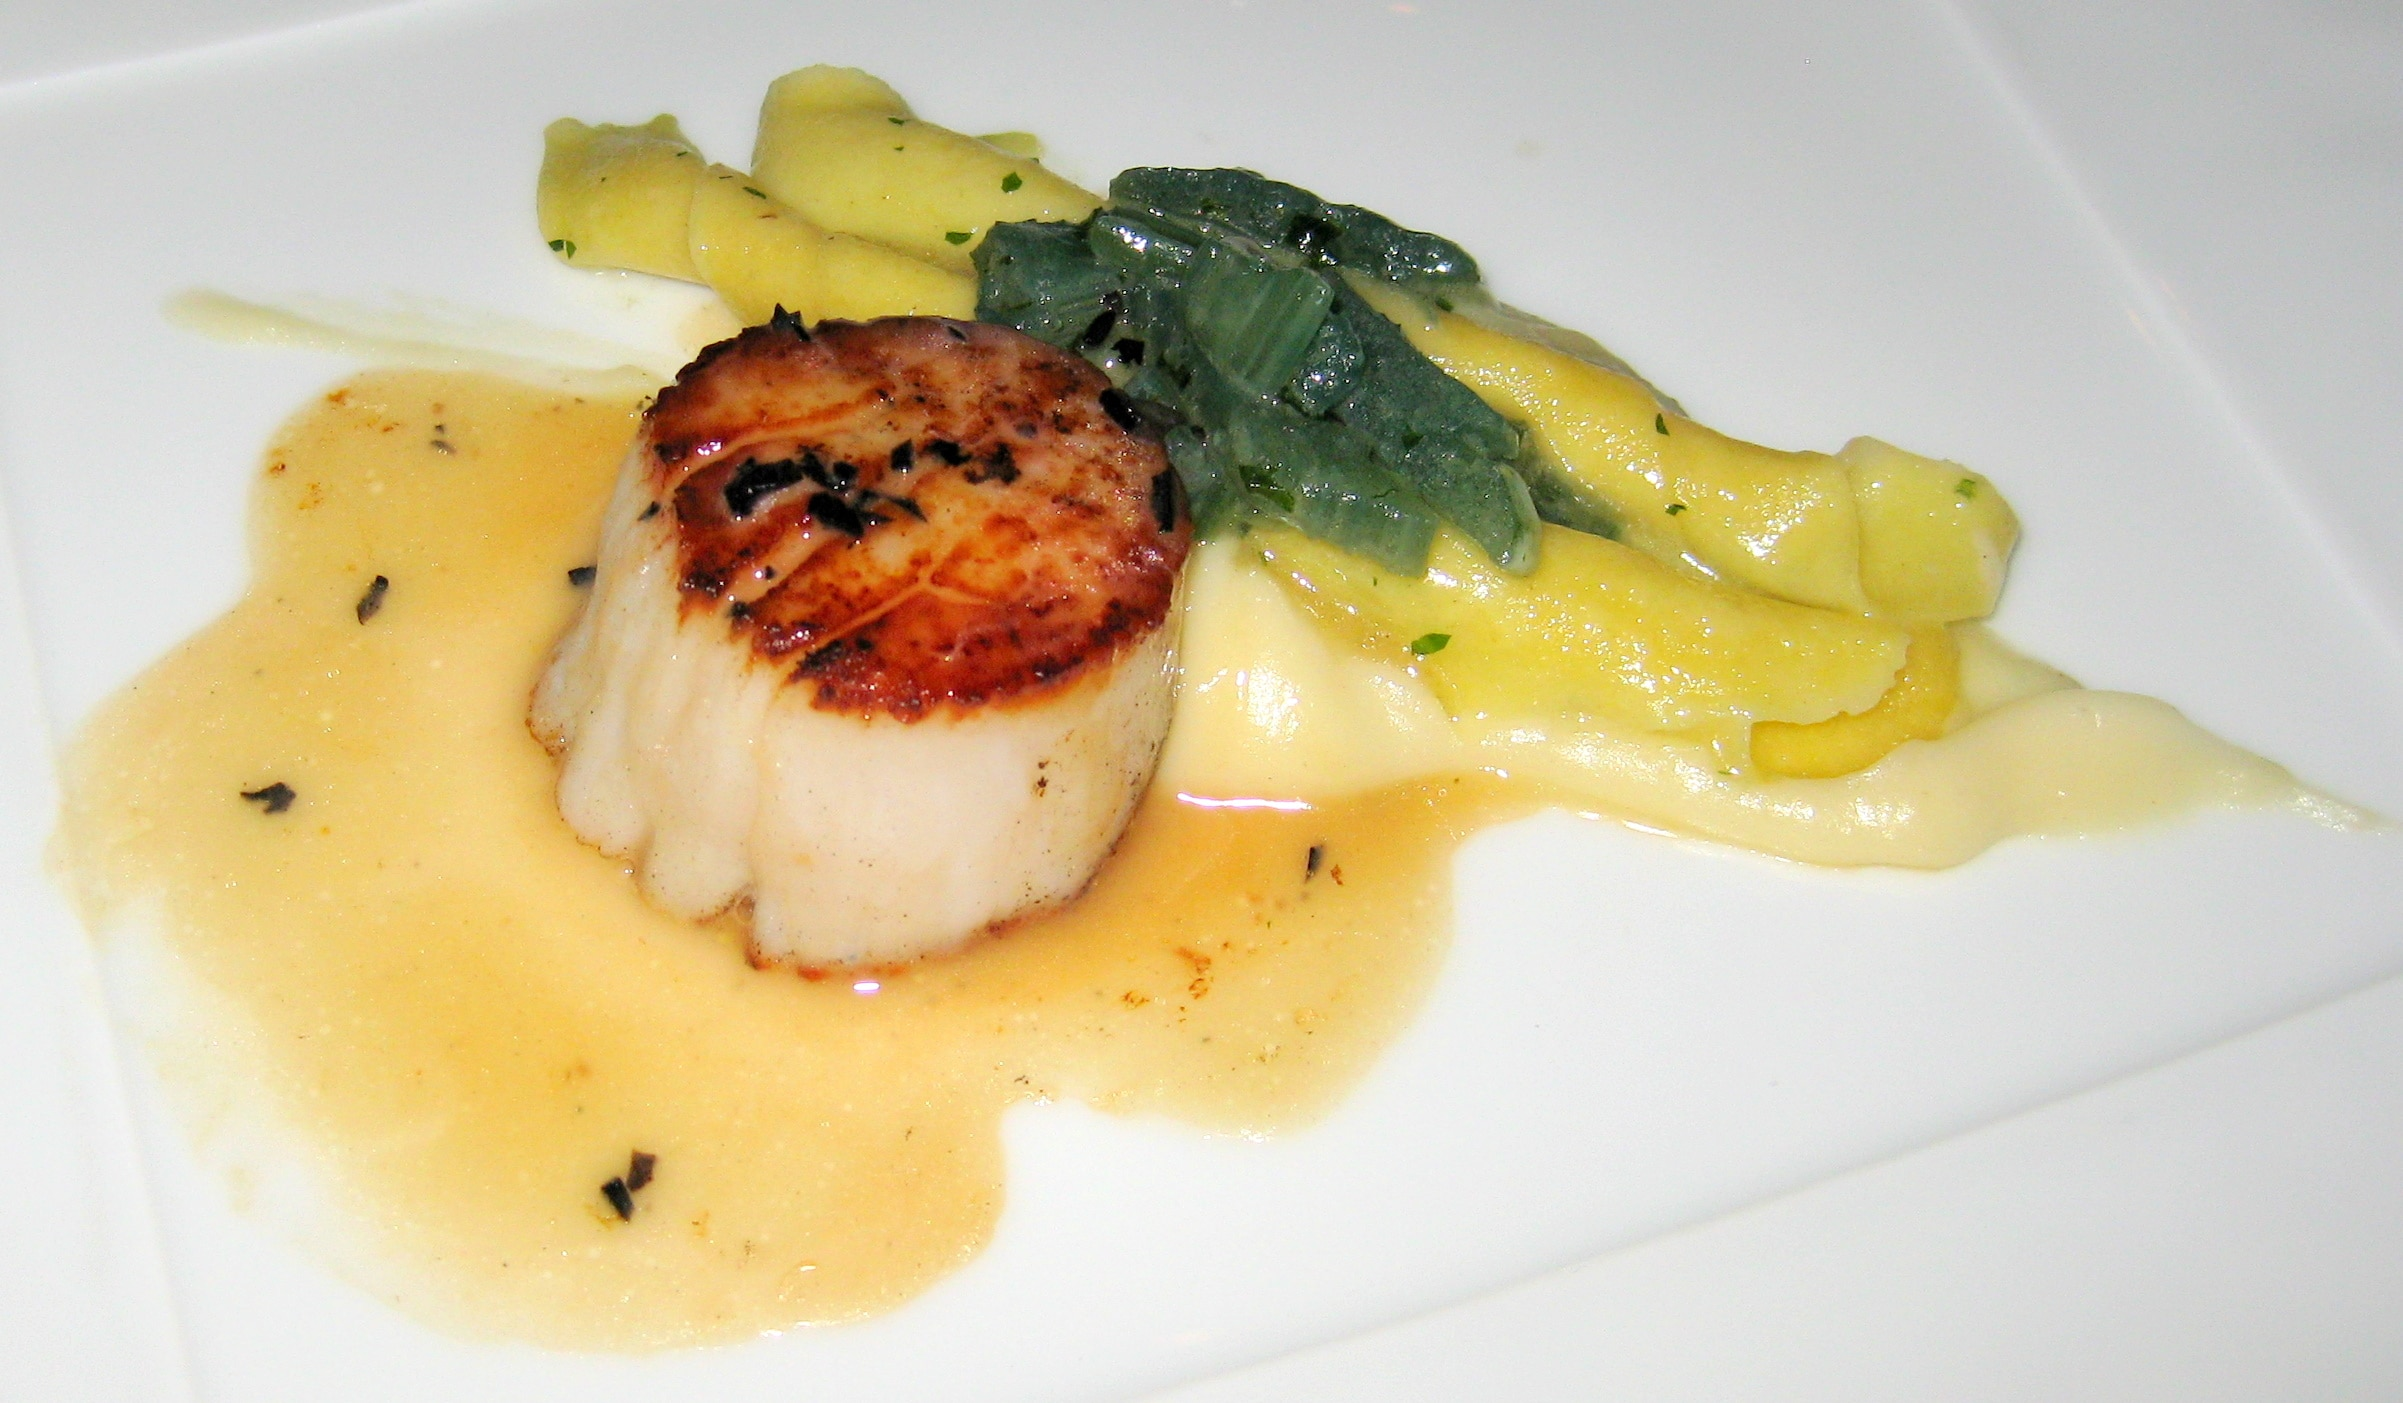 Maine diver sea scallops with hand-rolled pasta, sunchoke